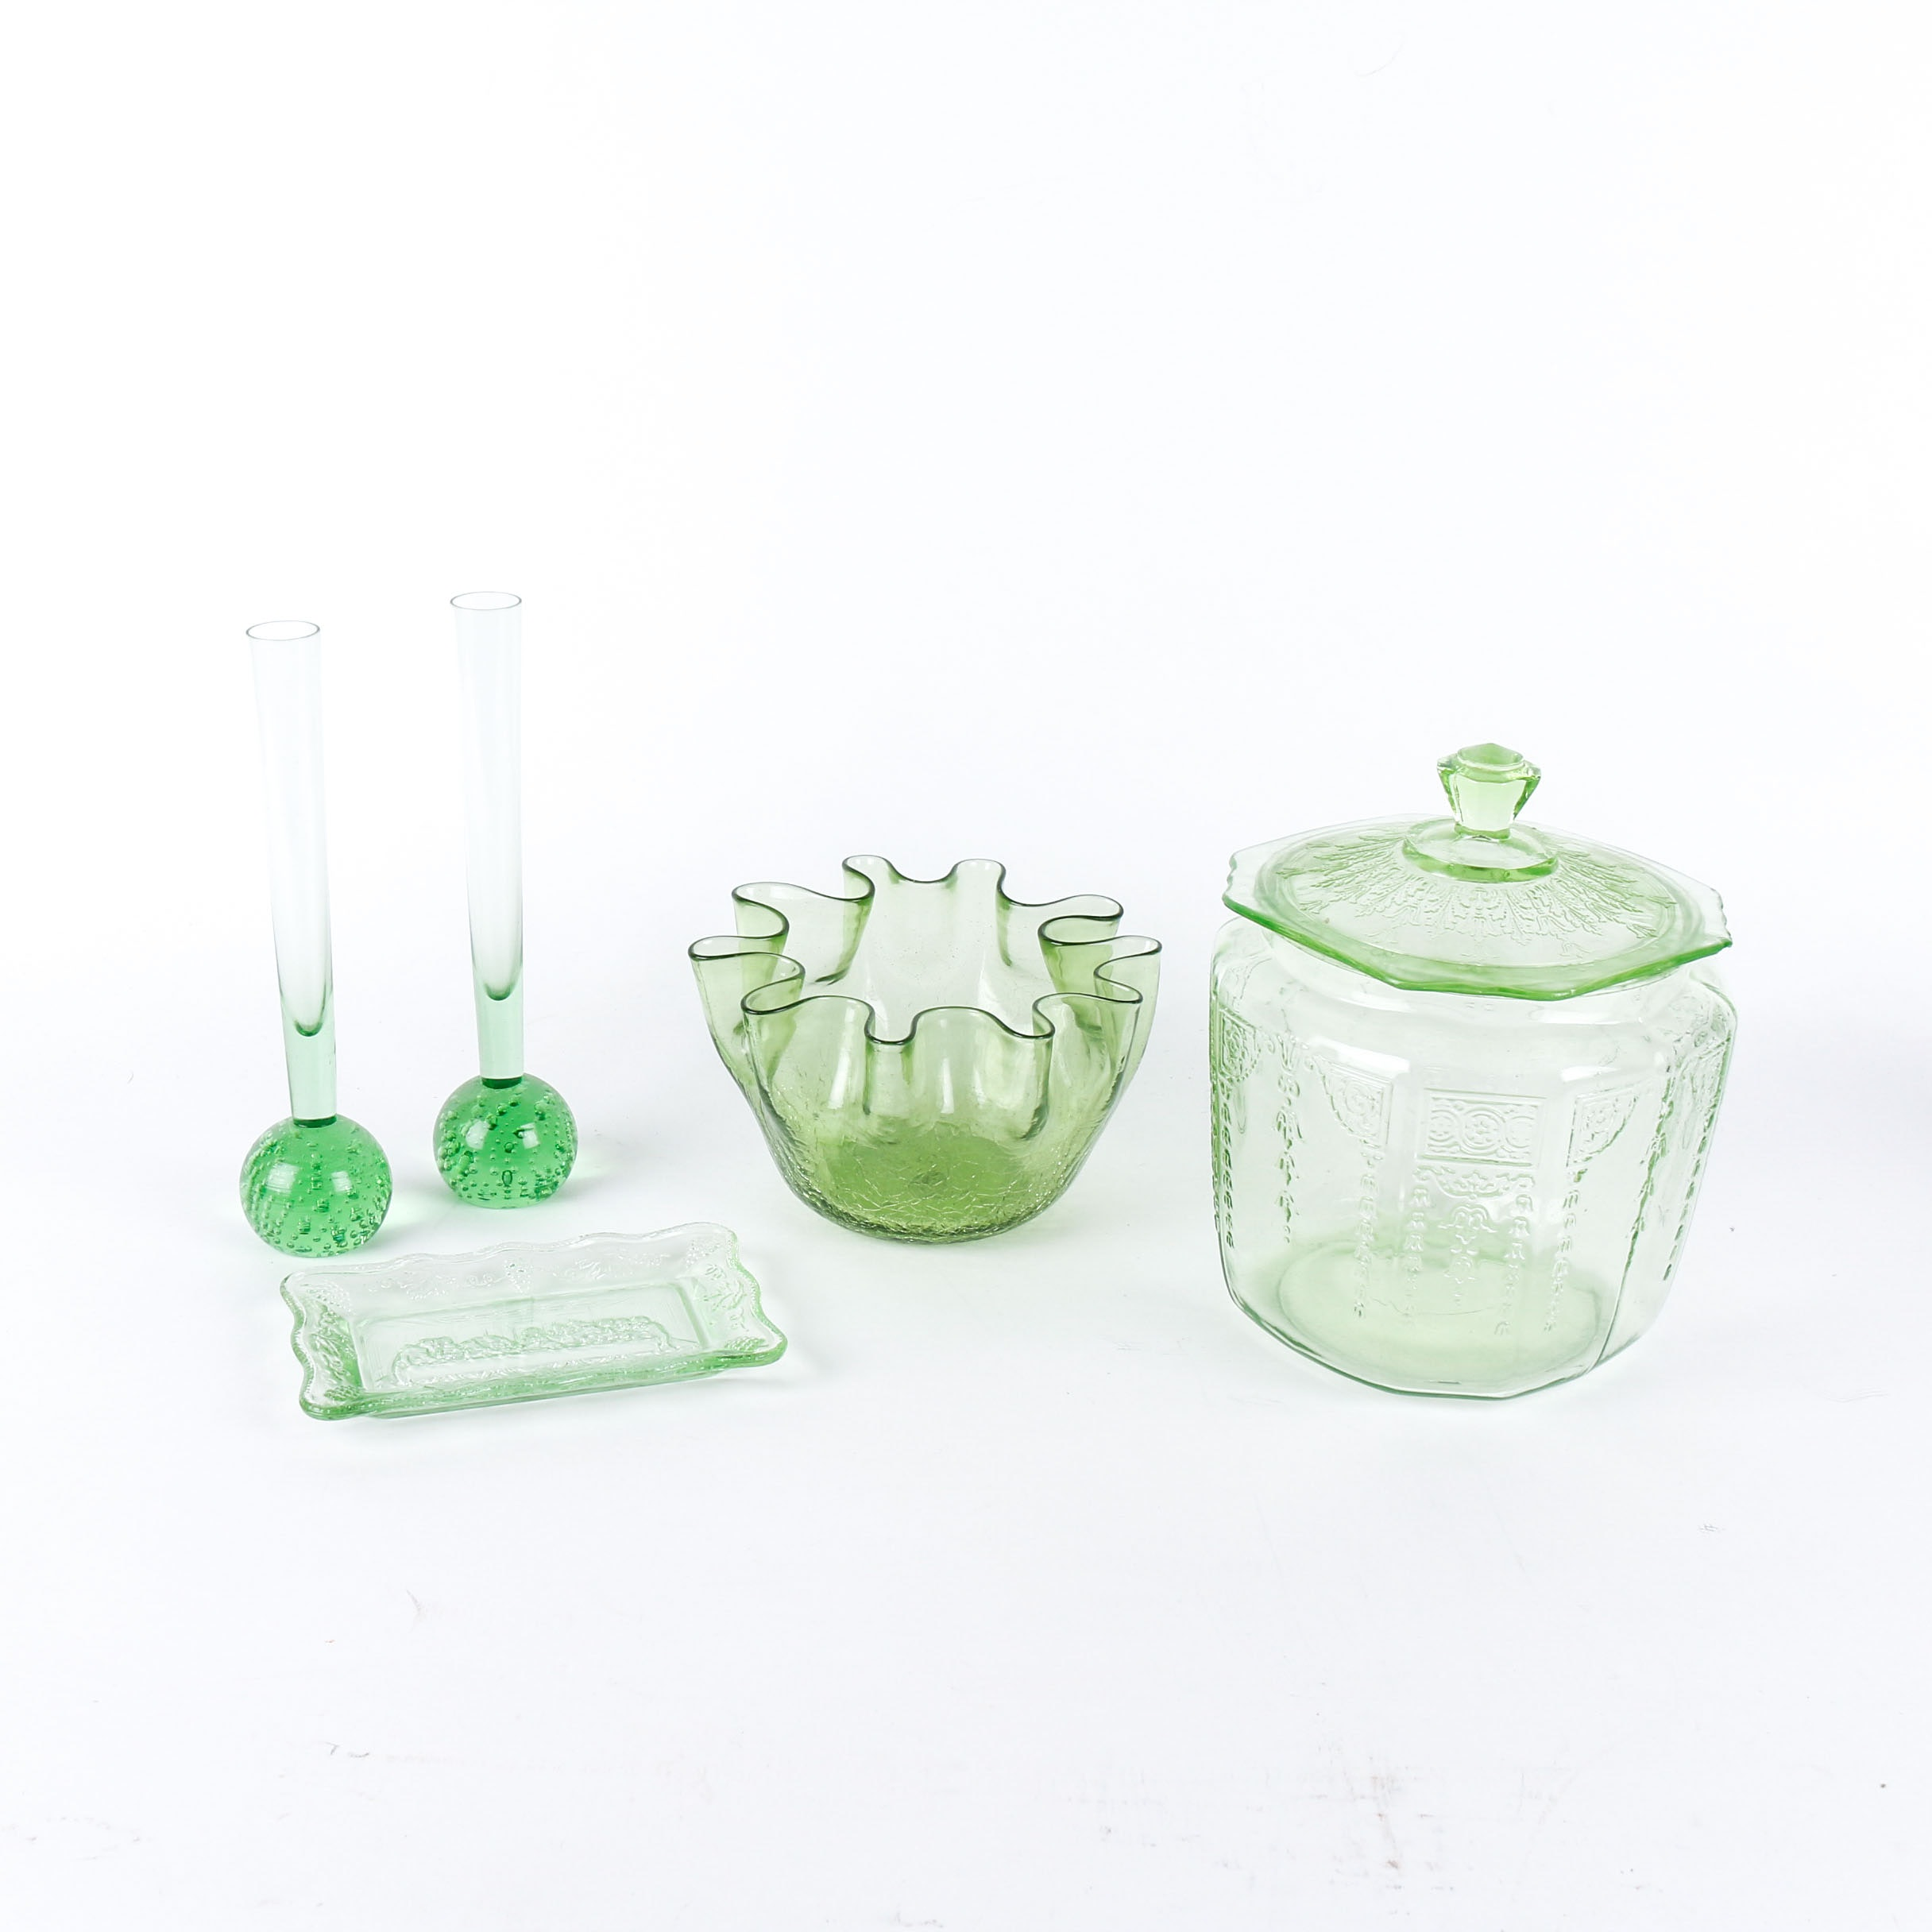 Collection of Vintage Green Depression Glass